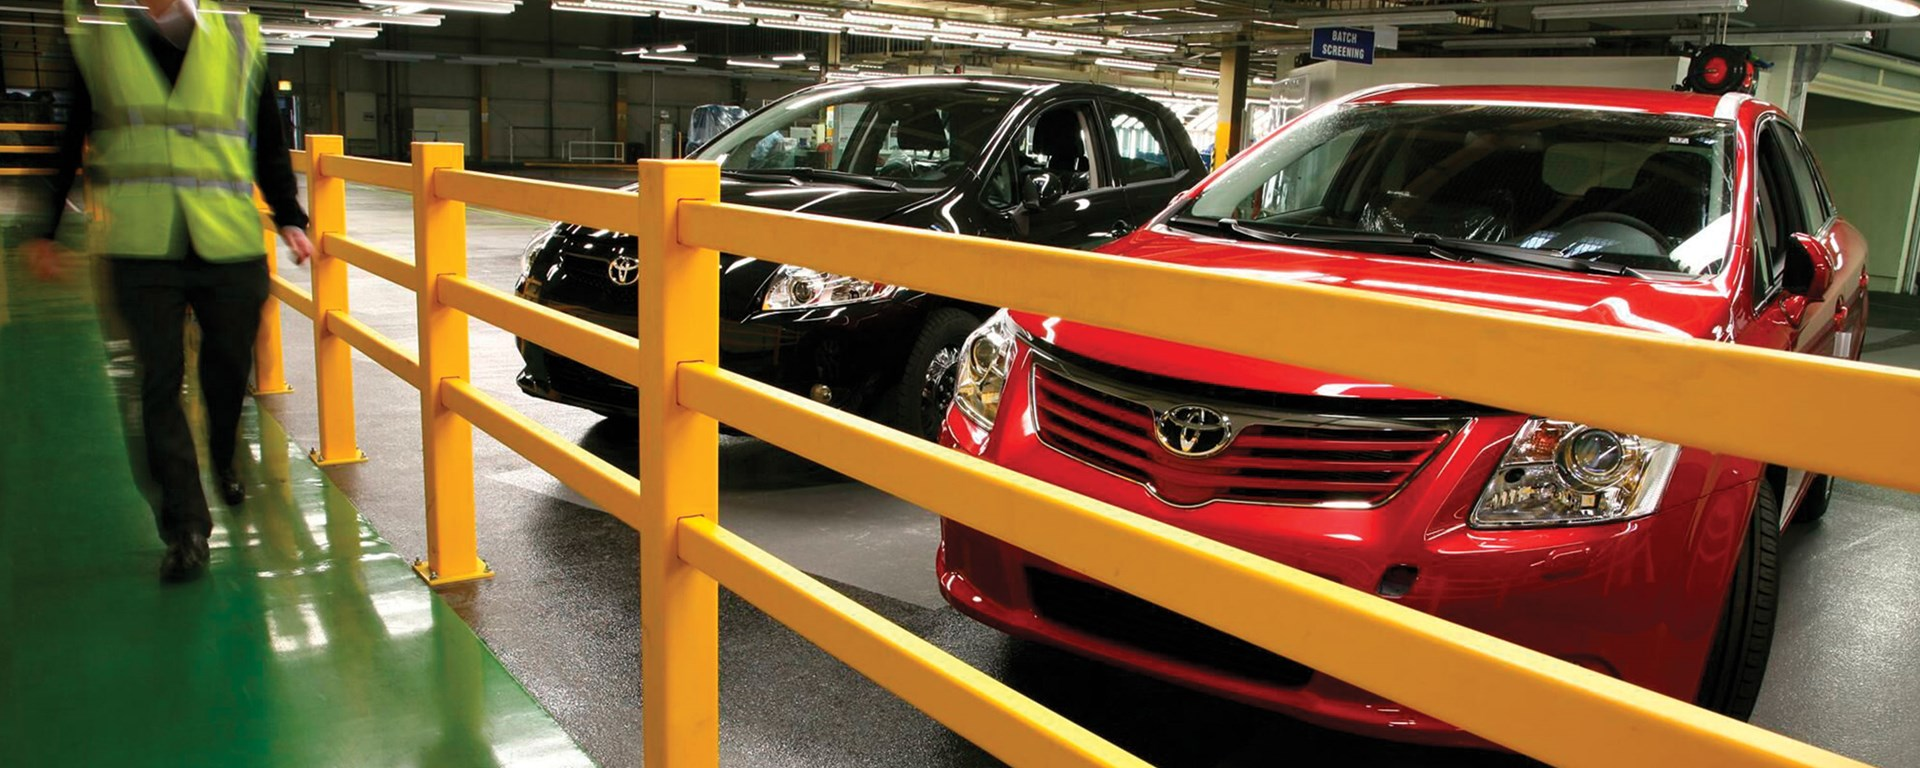 Manufacturing | Pedestrian safeguarding solutions for Toyota manufacturing plant